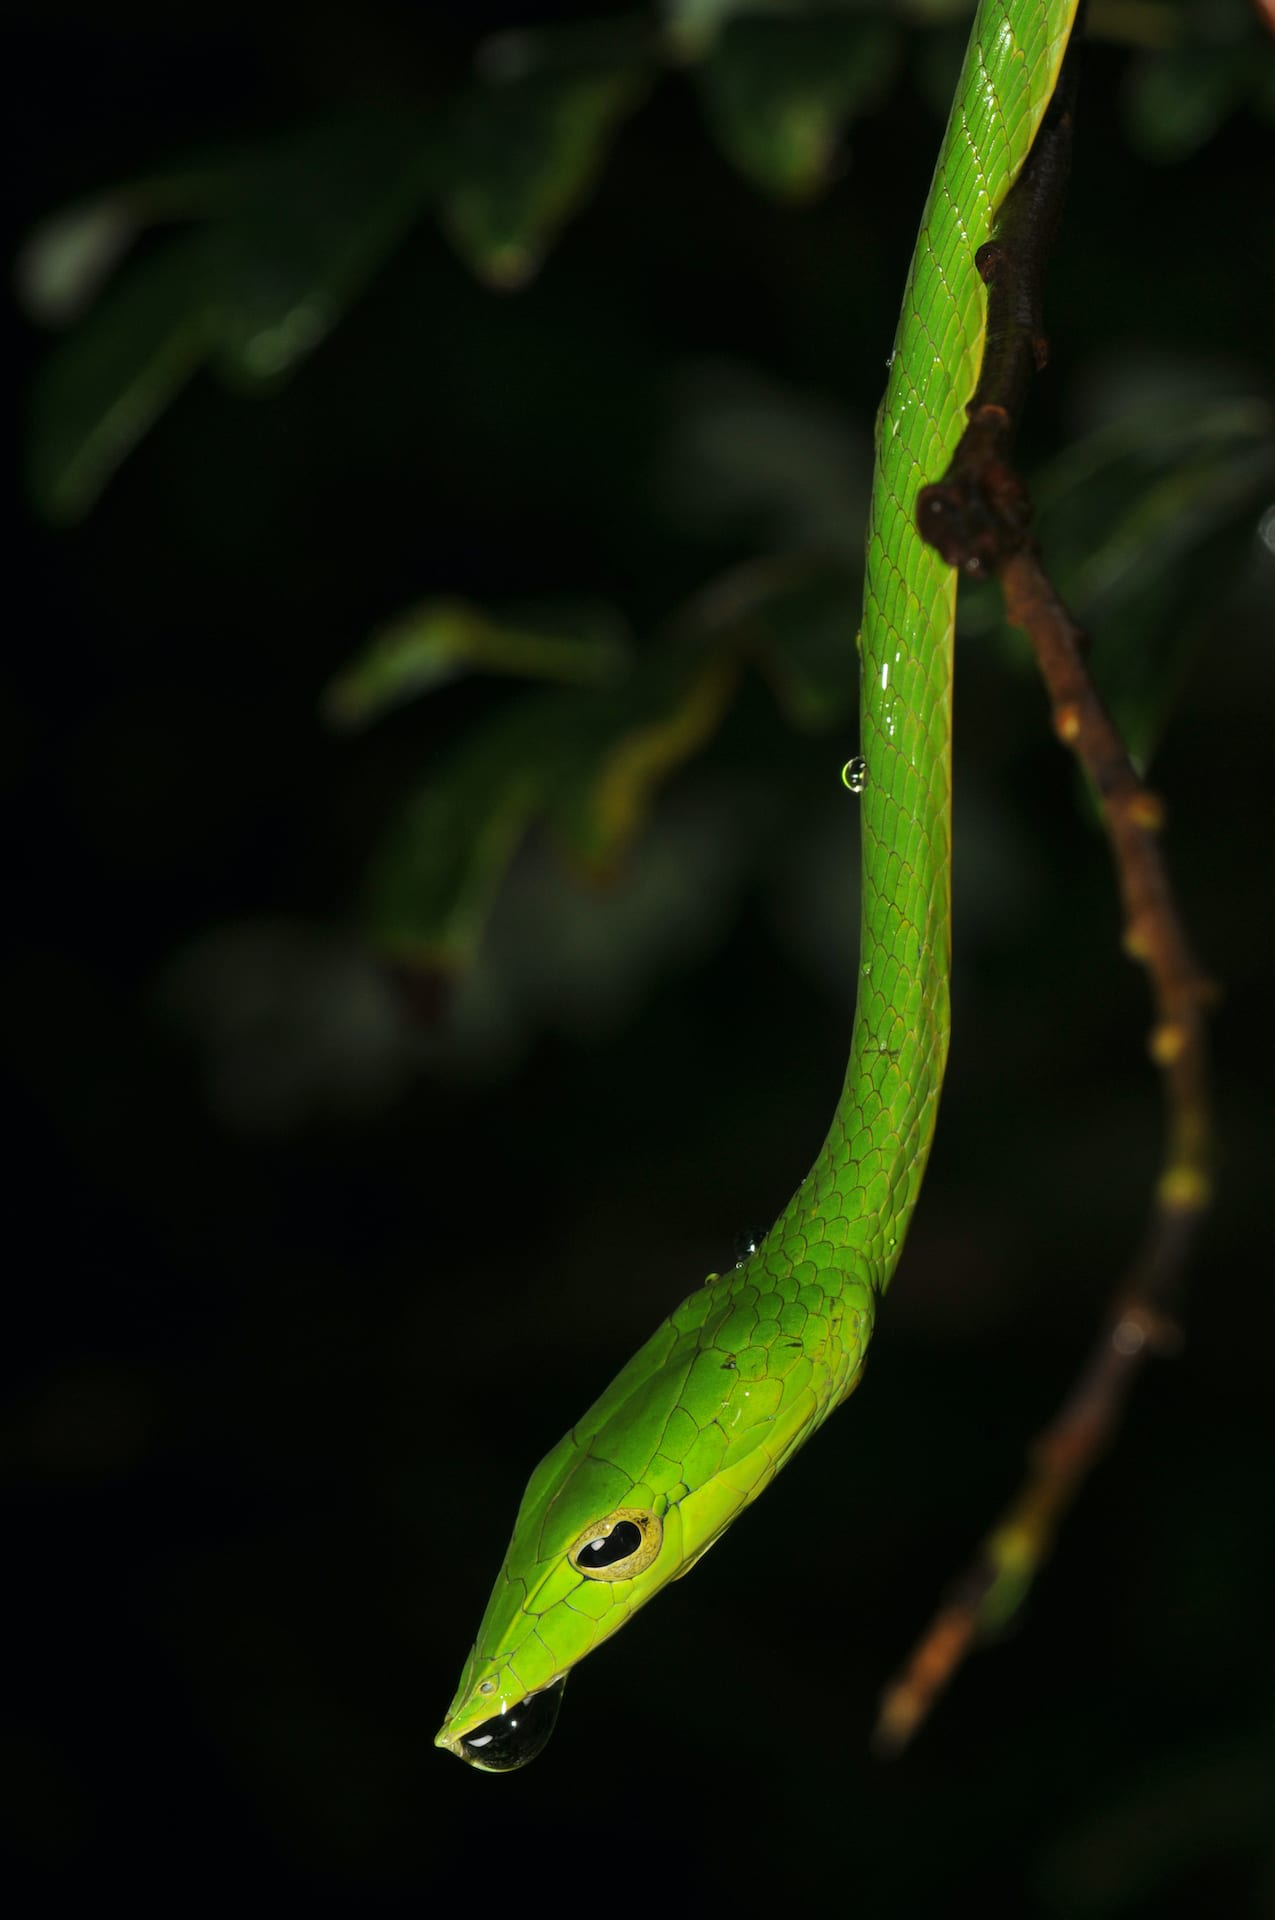 The green vine snake's (Ahaetulla nasuta) pointed snout and forward facing eyes give it binocular vision. This, along with it colour, gliding motion and slender body make it perfect for its arboreal lifestyle.  Cover photo: The bronzeback tree snake (Dendrelaphis tristis) has two ridges near the edges of its ventral (belly) scales that enable it to grip even the faintest hold, enabling it to climb effortlessly up seemingly smooth surfaces.